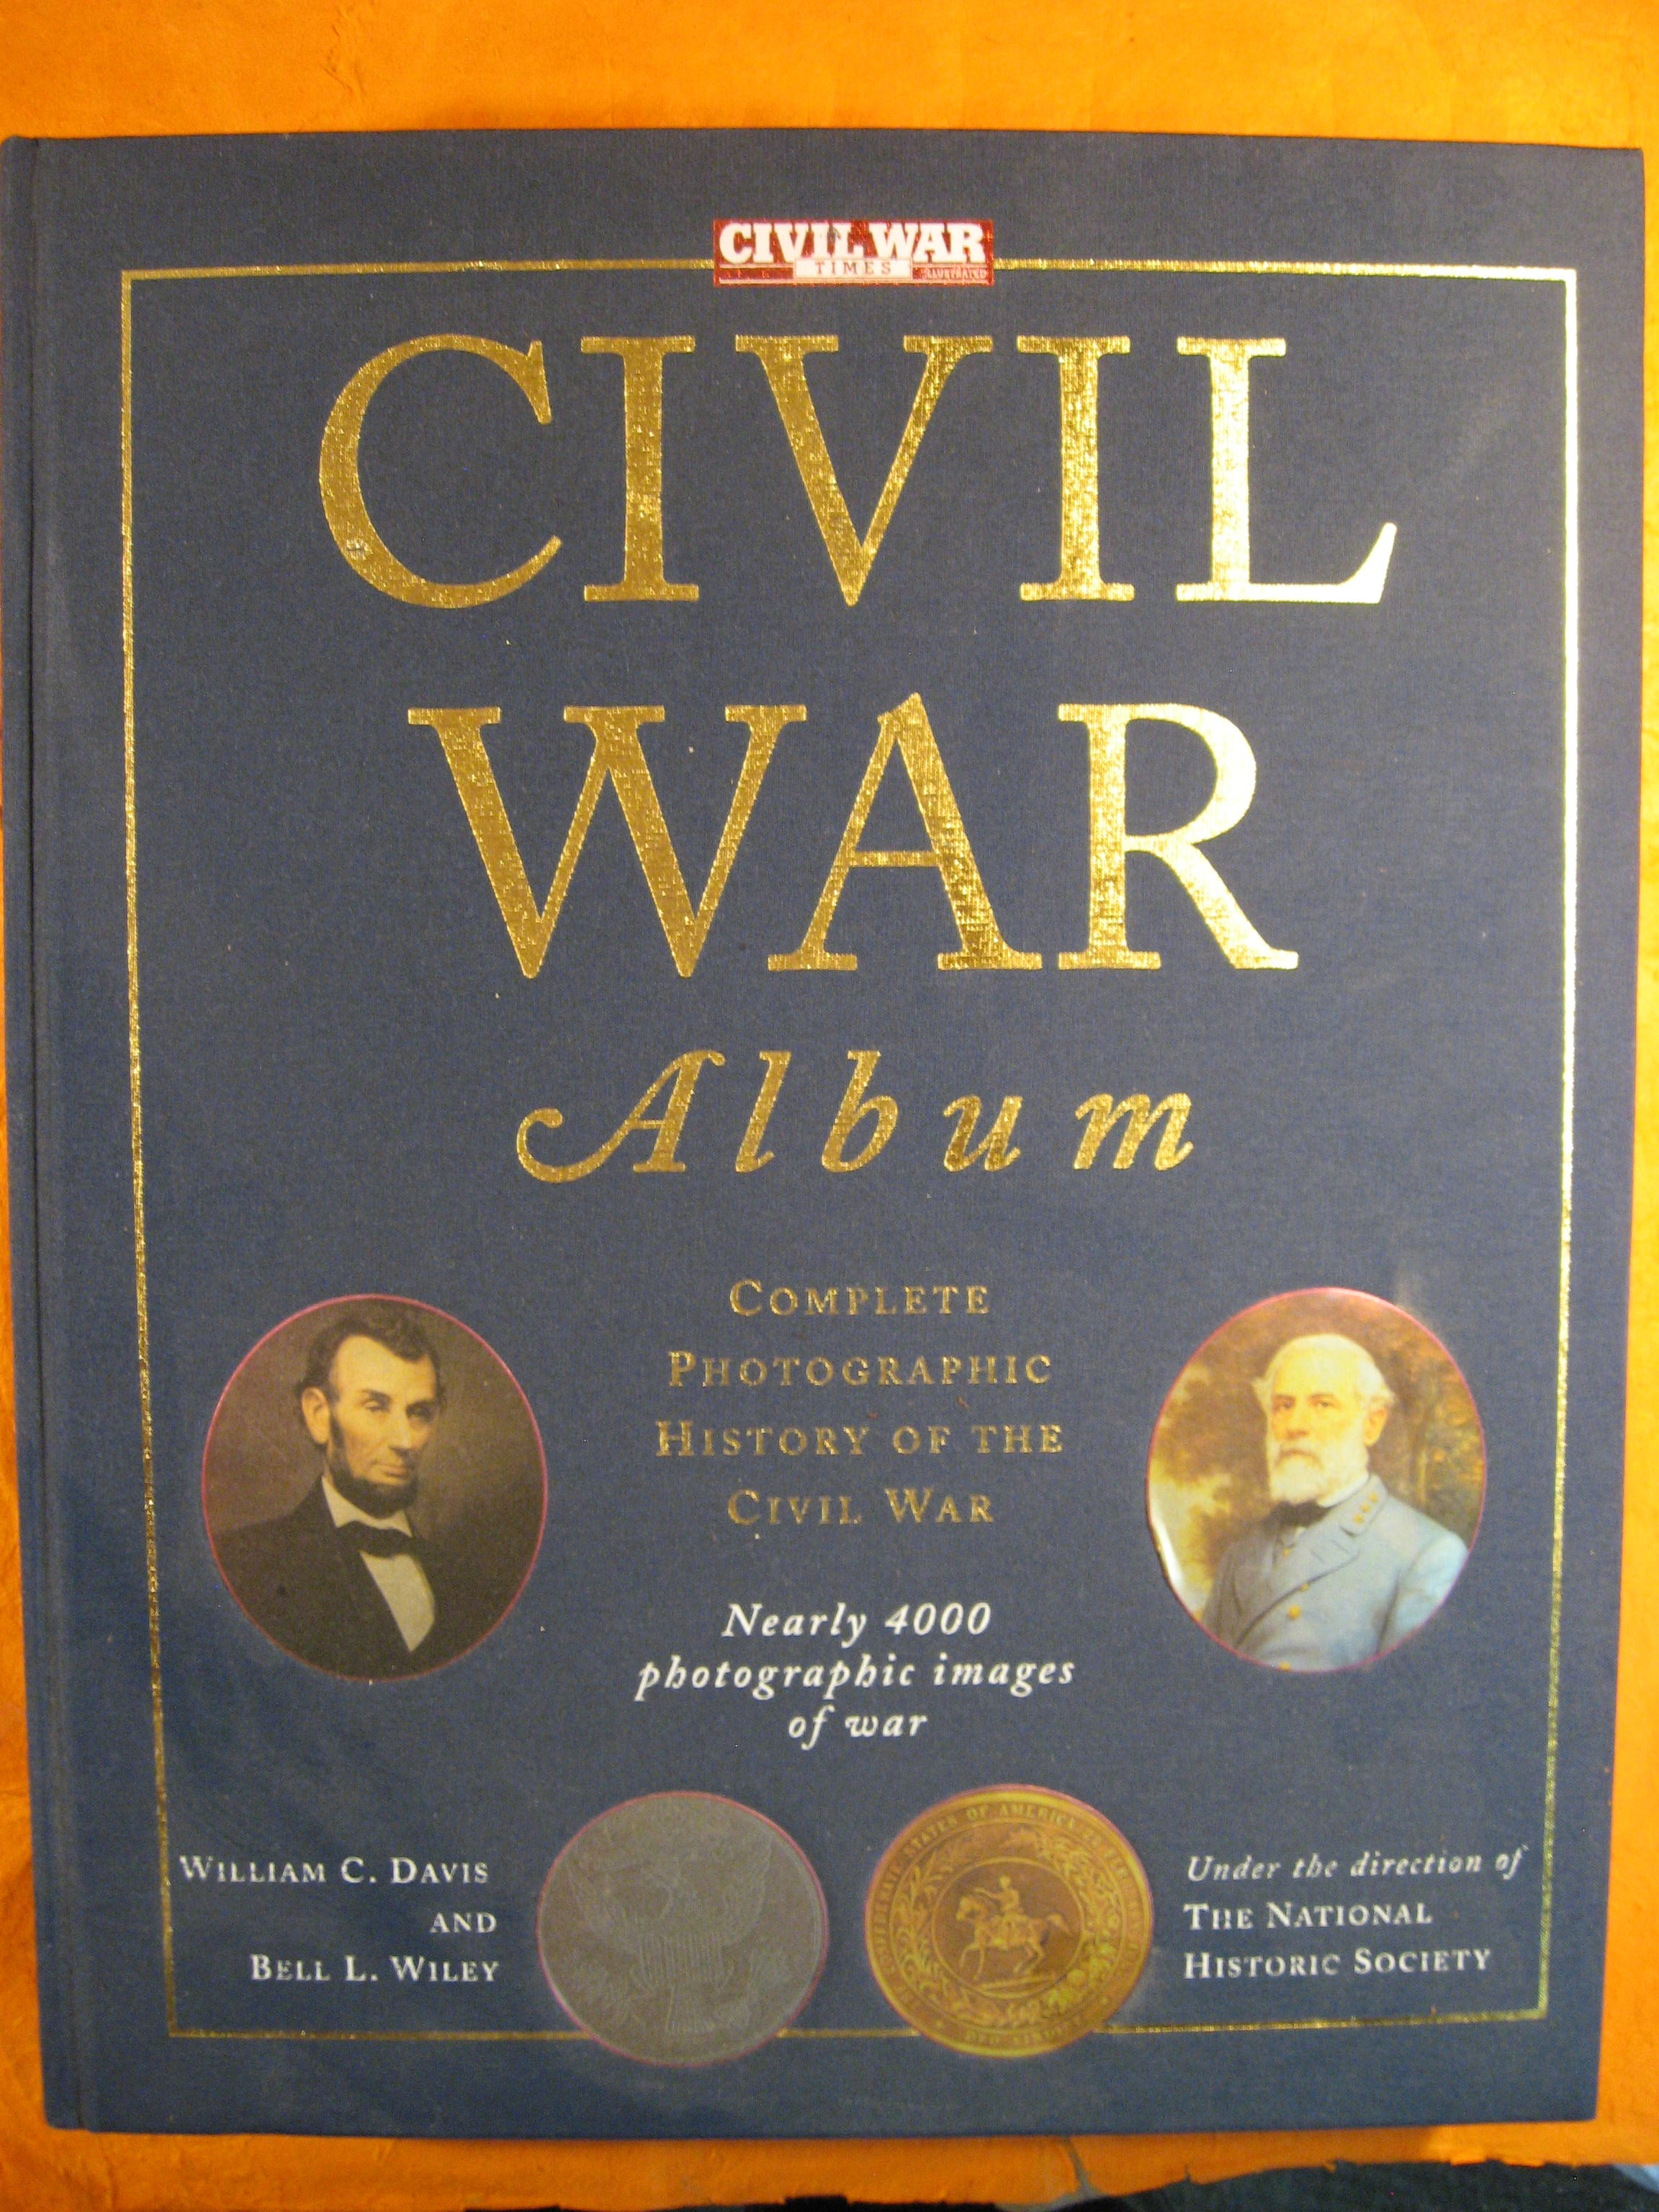 Civil War Album Complete Photographic History of the Civil War, Davis, William C. And Wiley, Bell L.